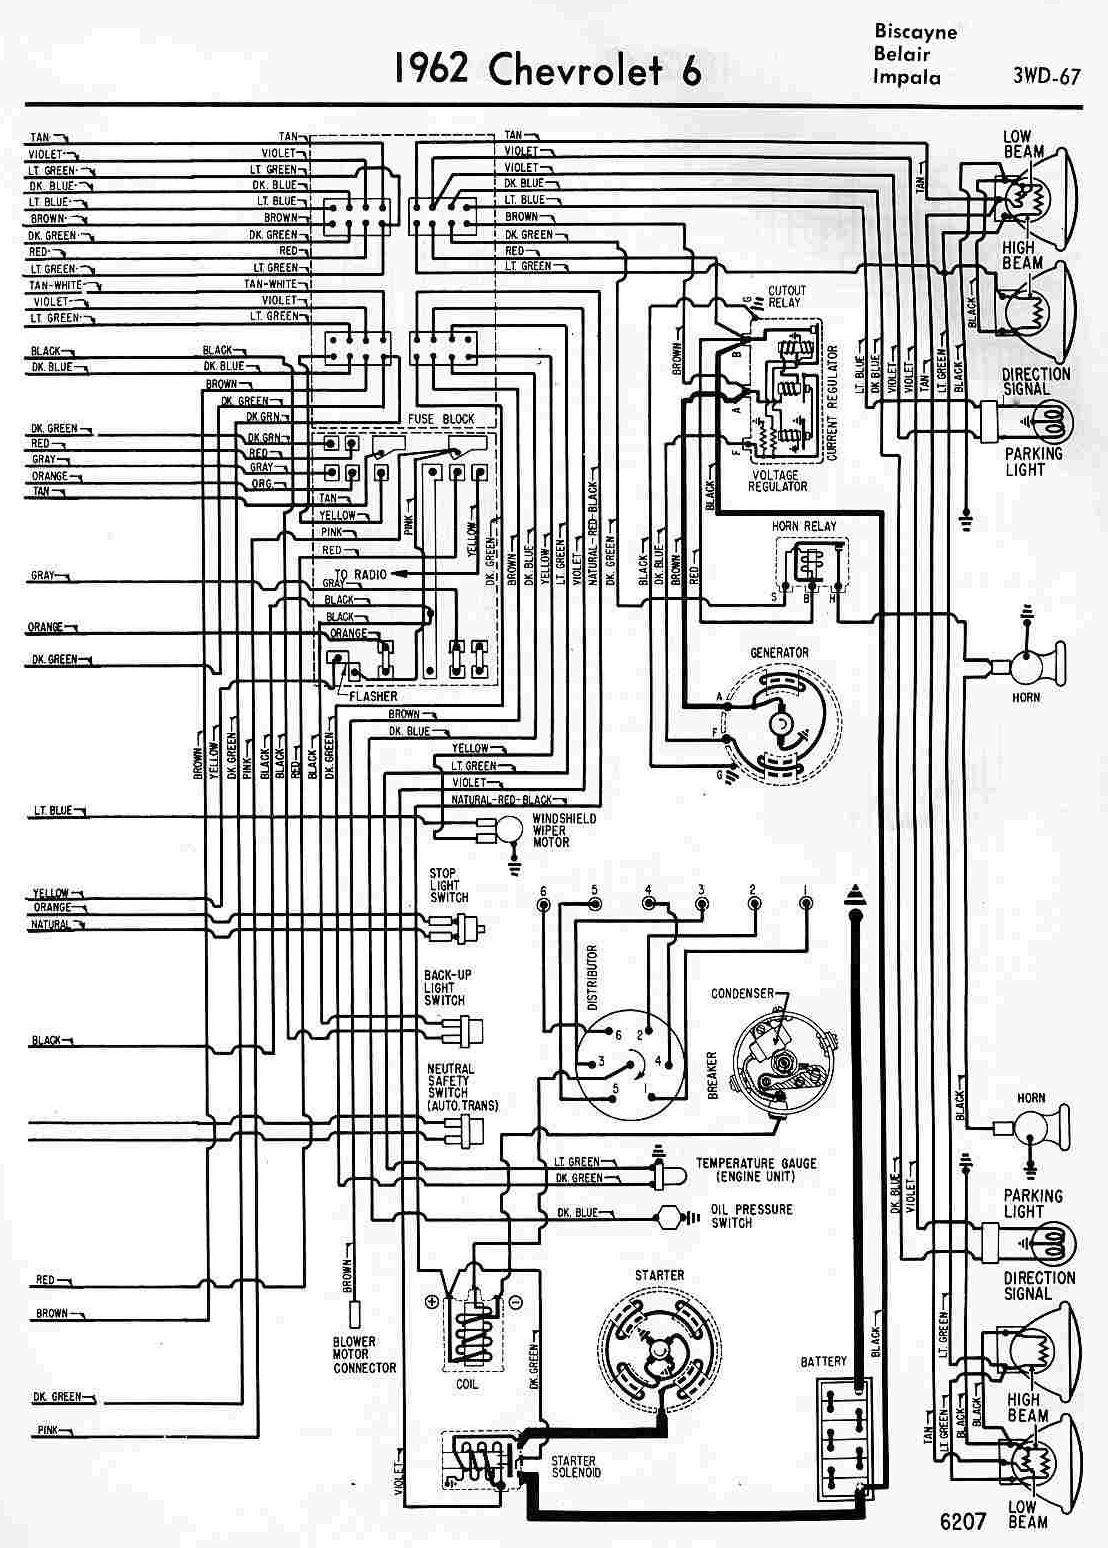 simple wiring diagram 1966 chevy impala trusted wiring diagrams u2022 rh shlnk co